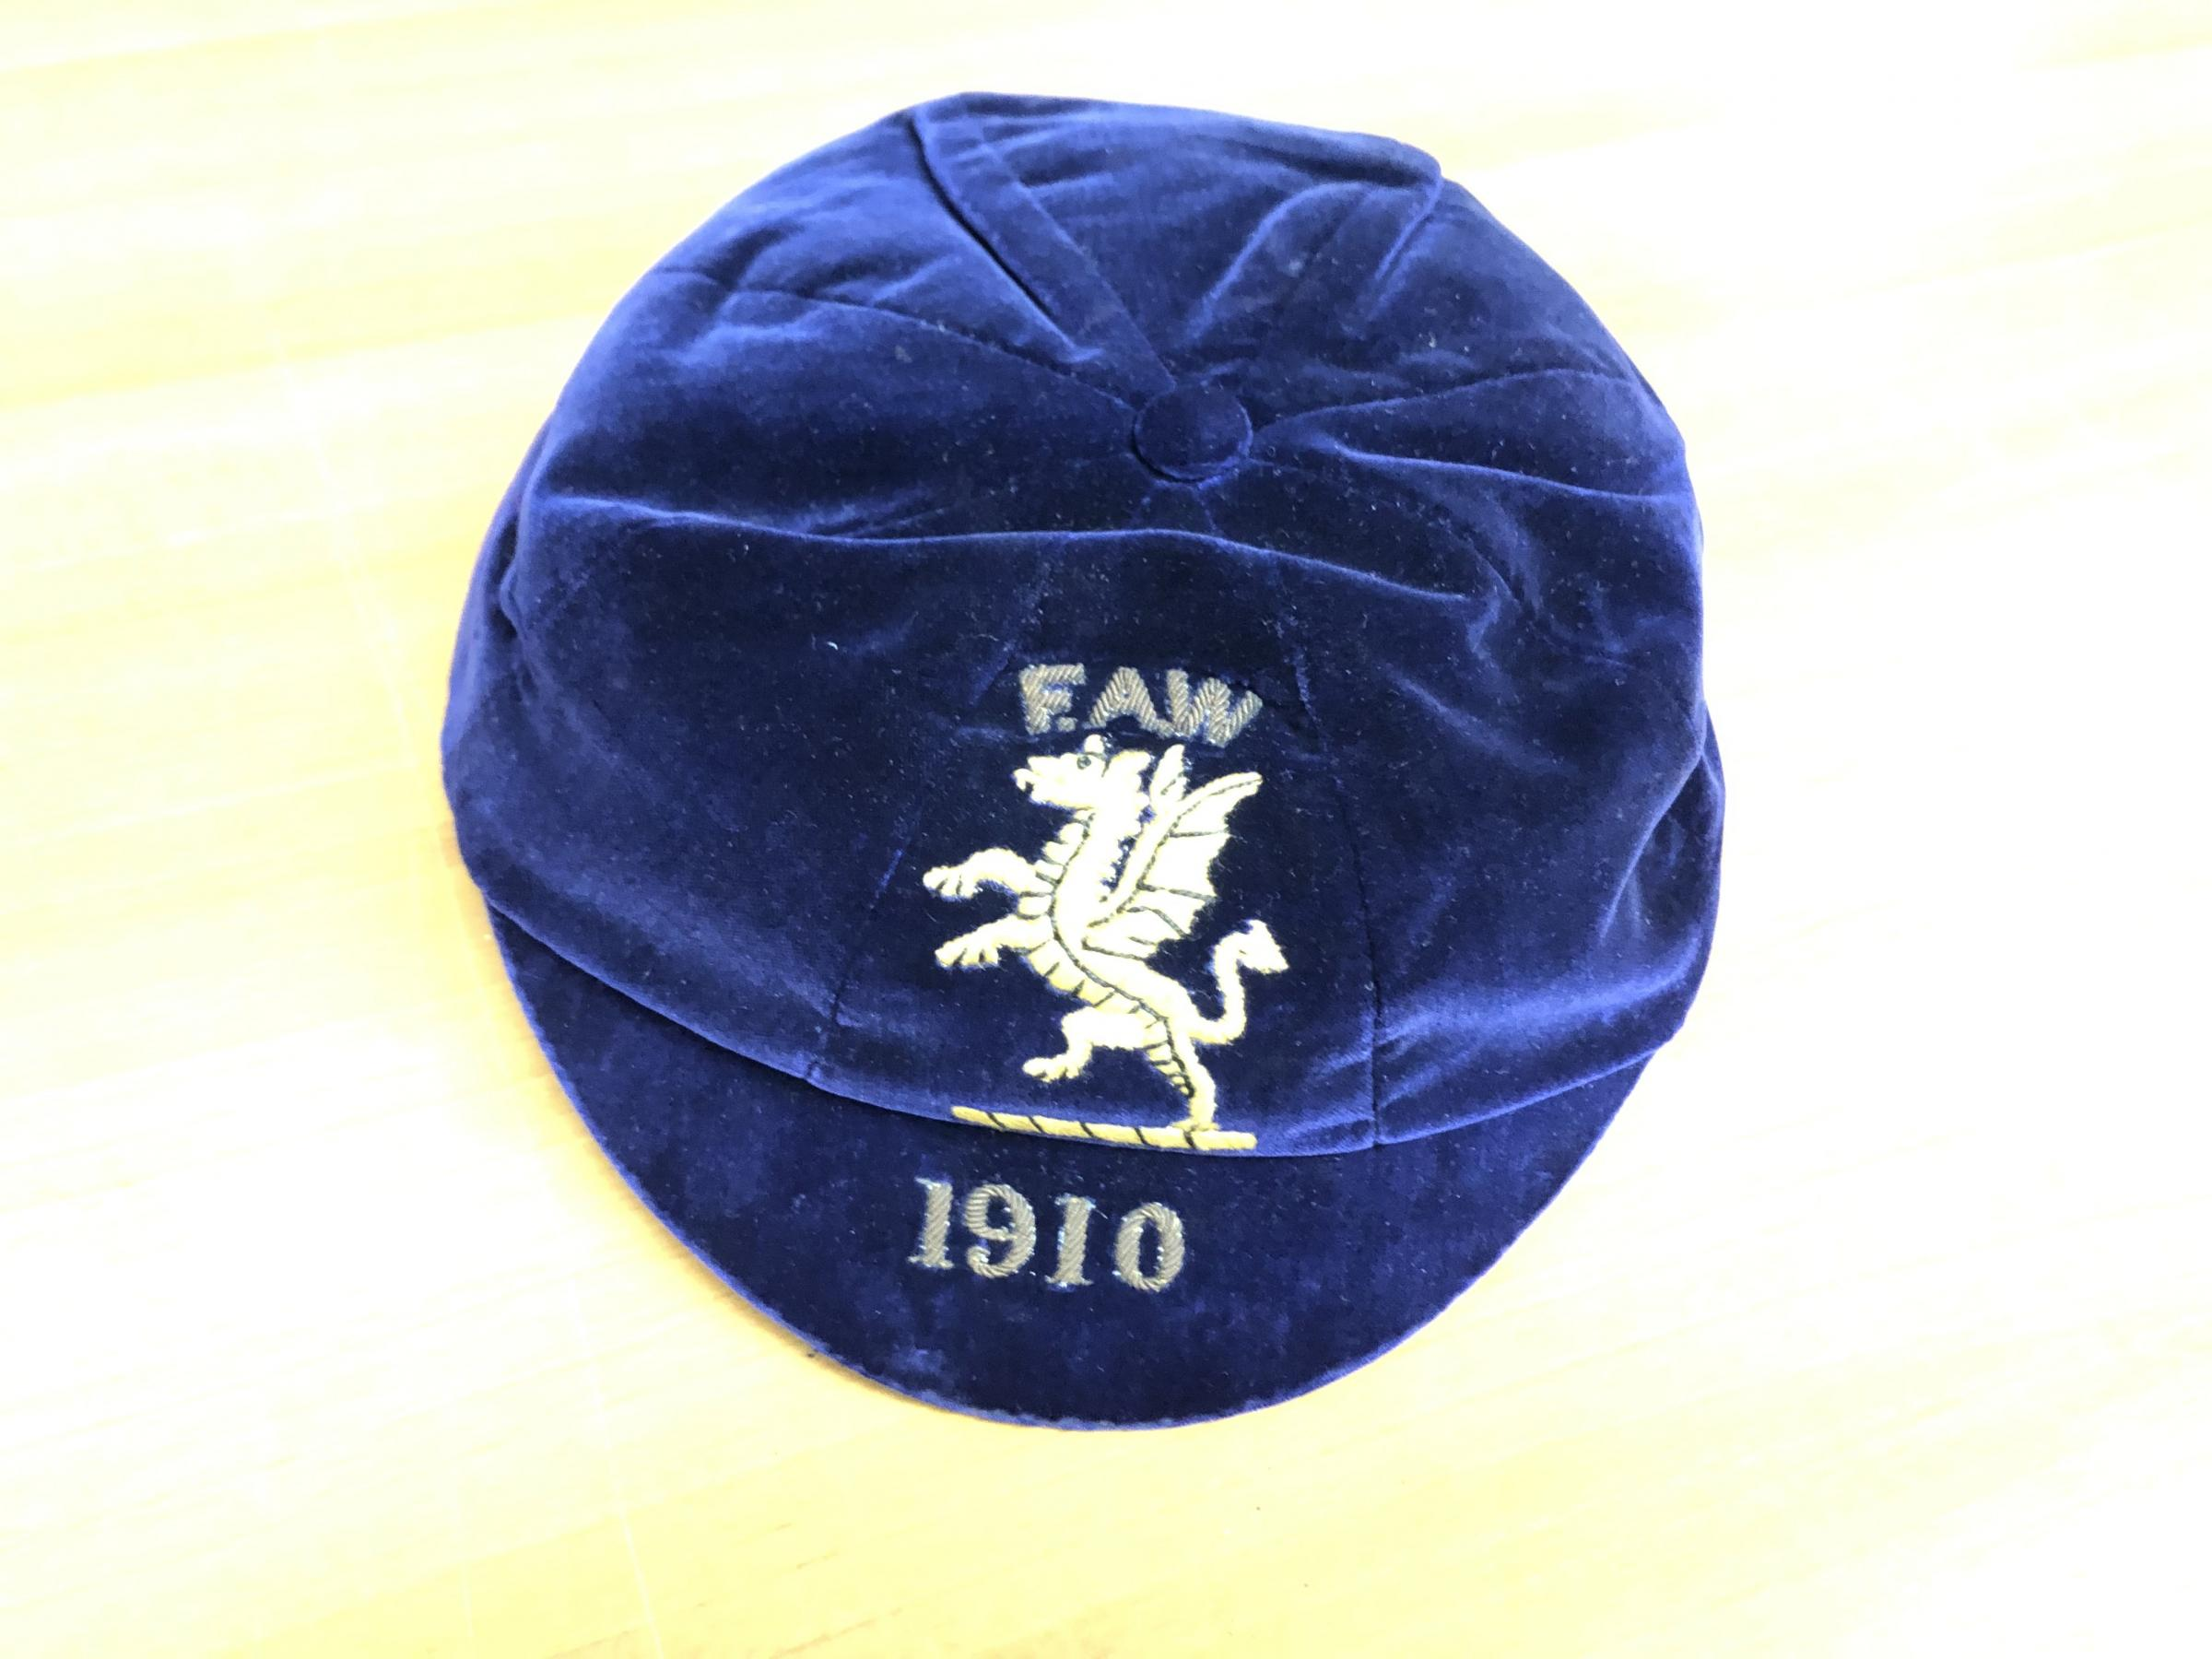 Items from the Wales Football Collection